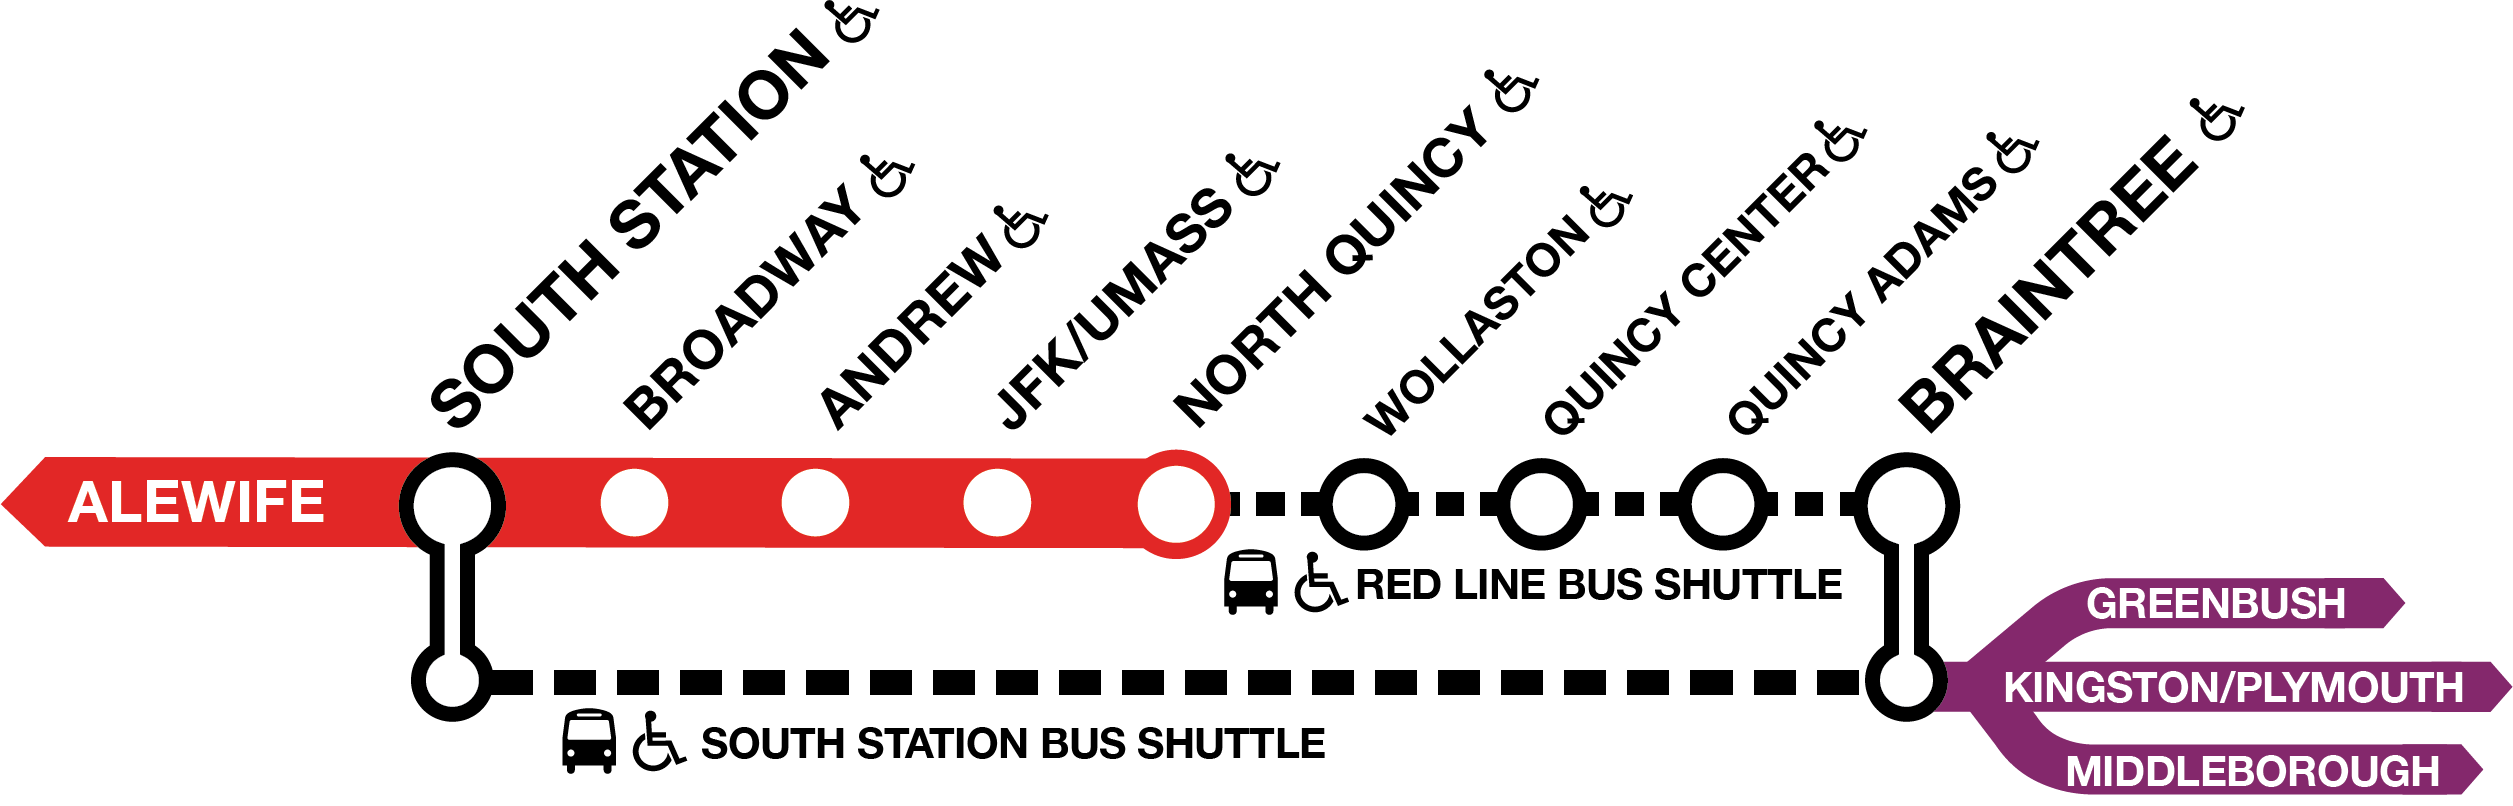 wollaston-commuter-rail-graphic.png